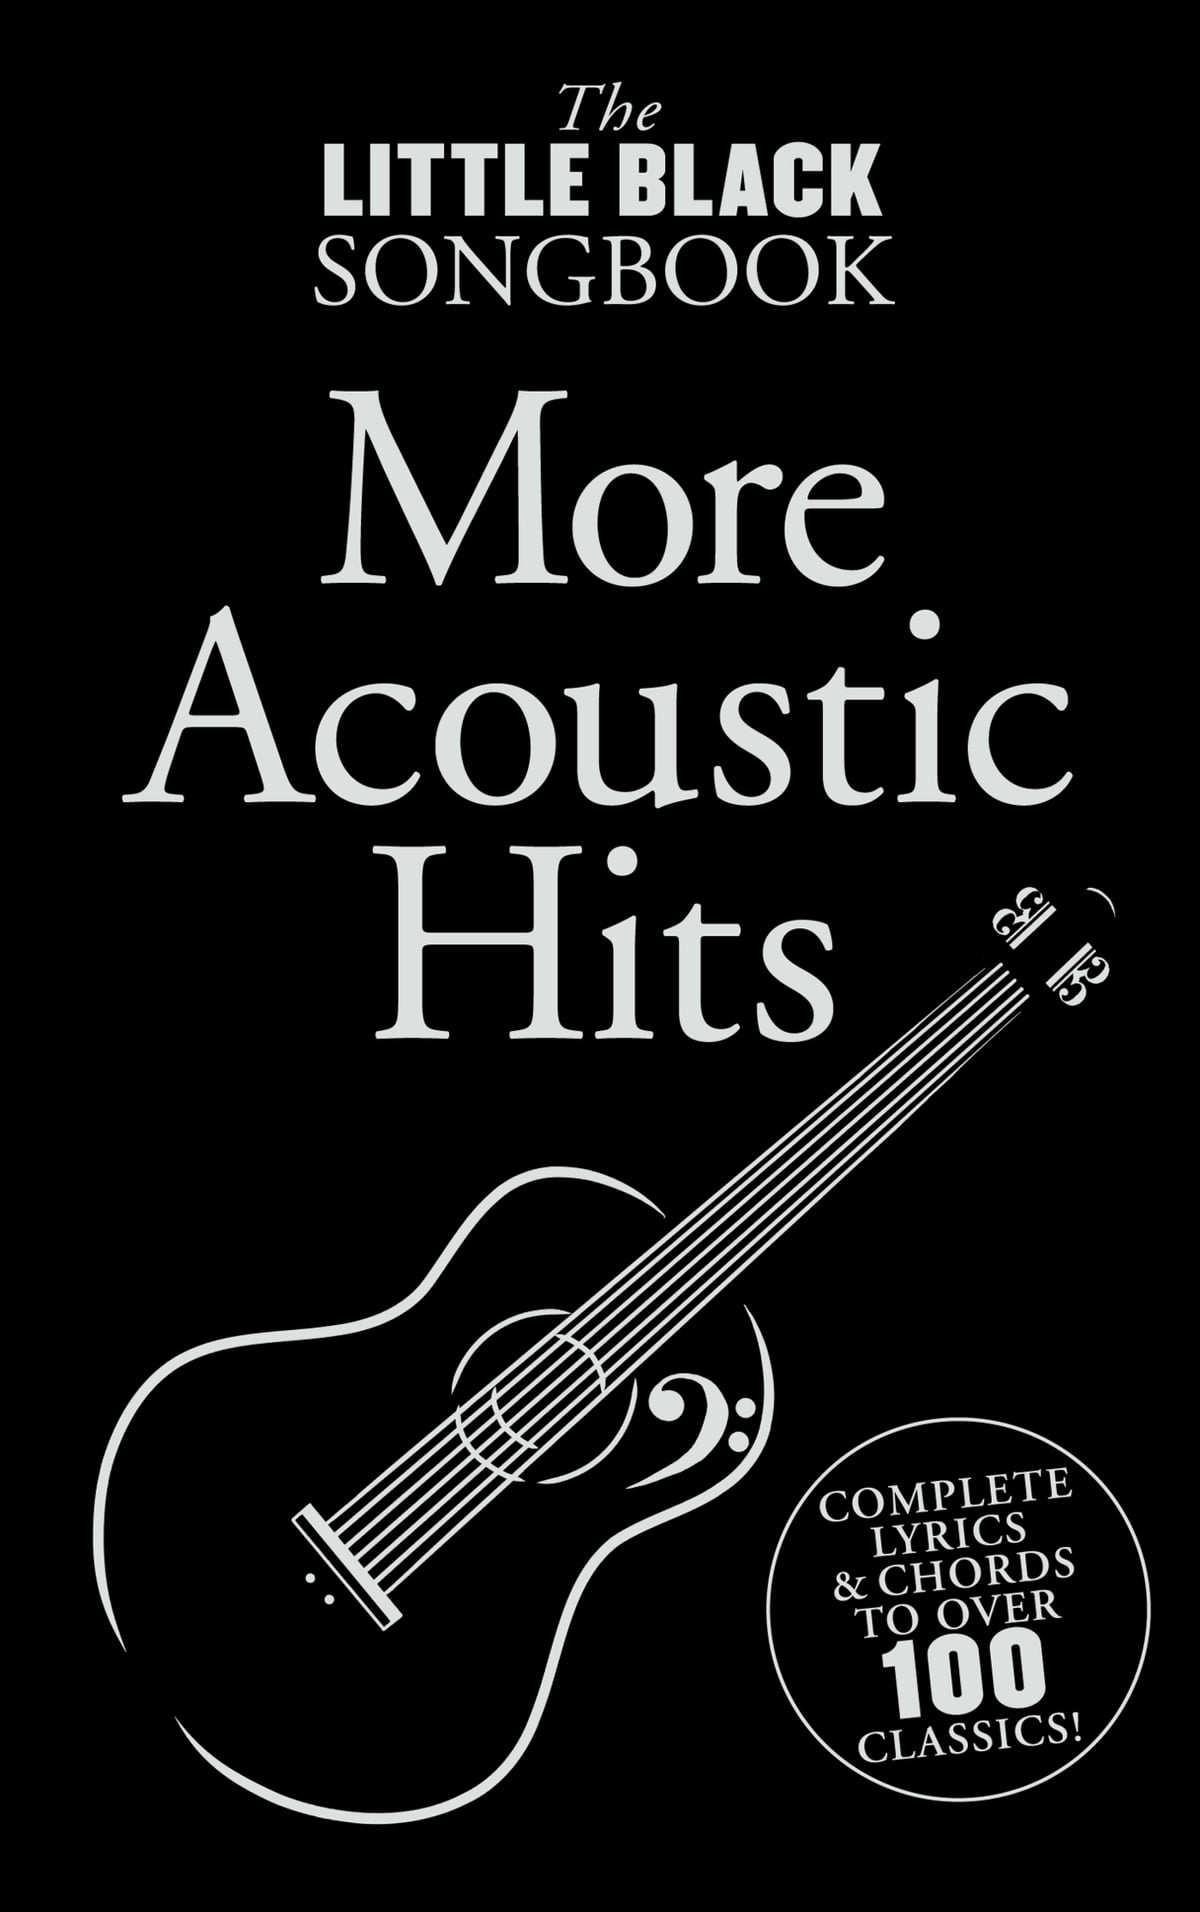 The Little Black Songbook More Acoustic Hits Ebook By Wise